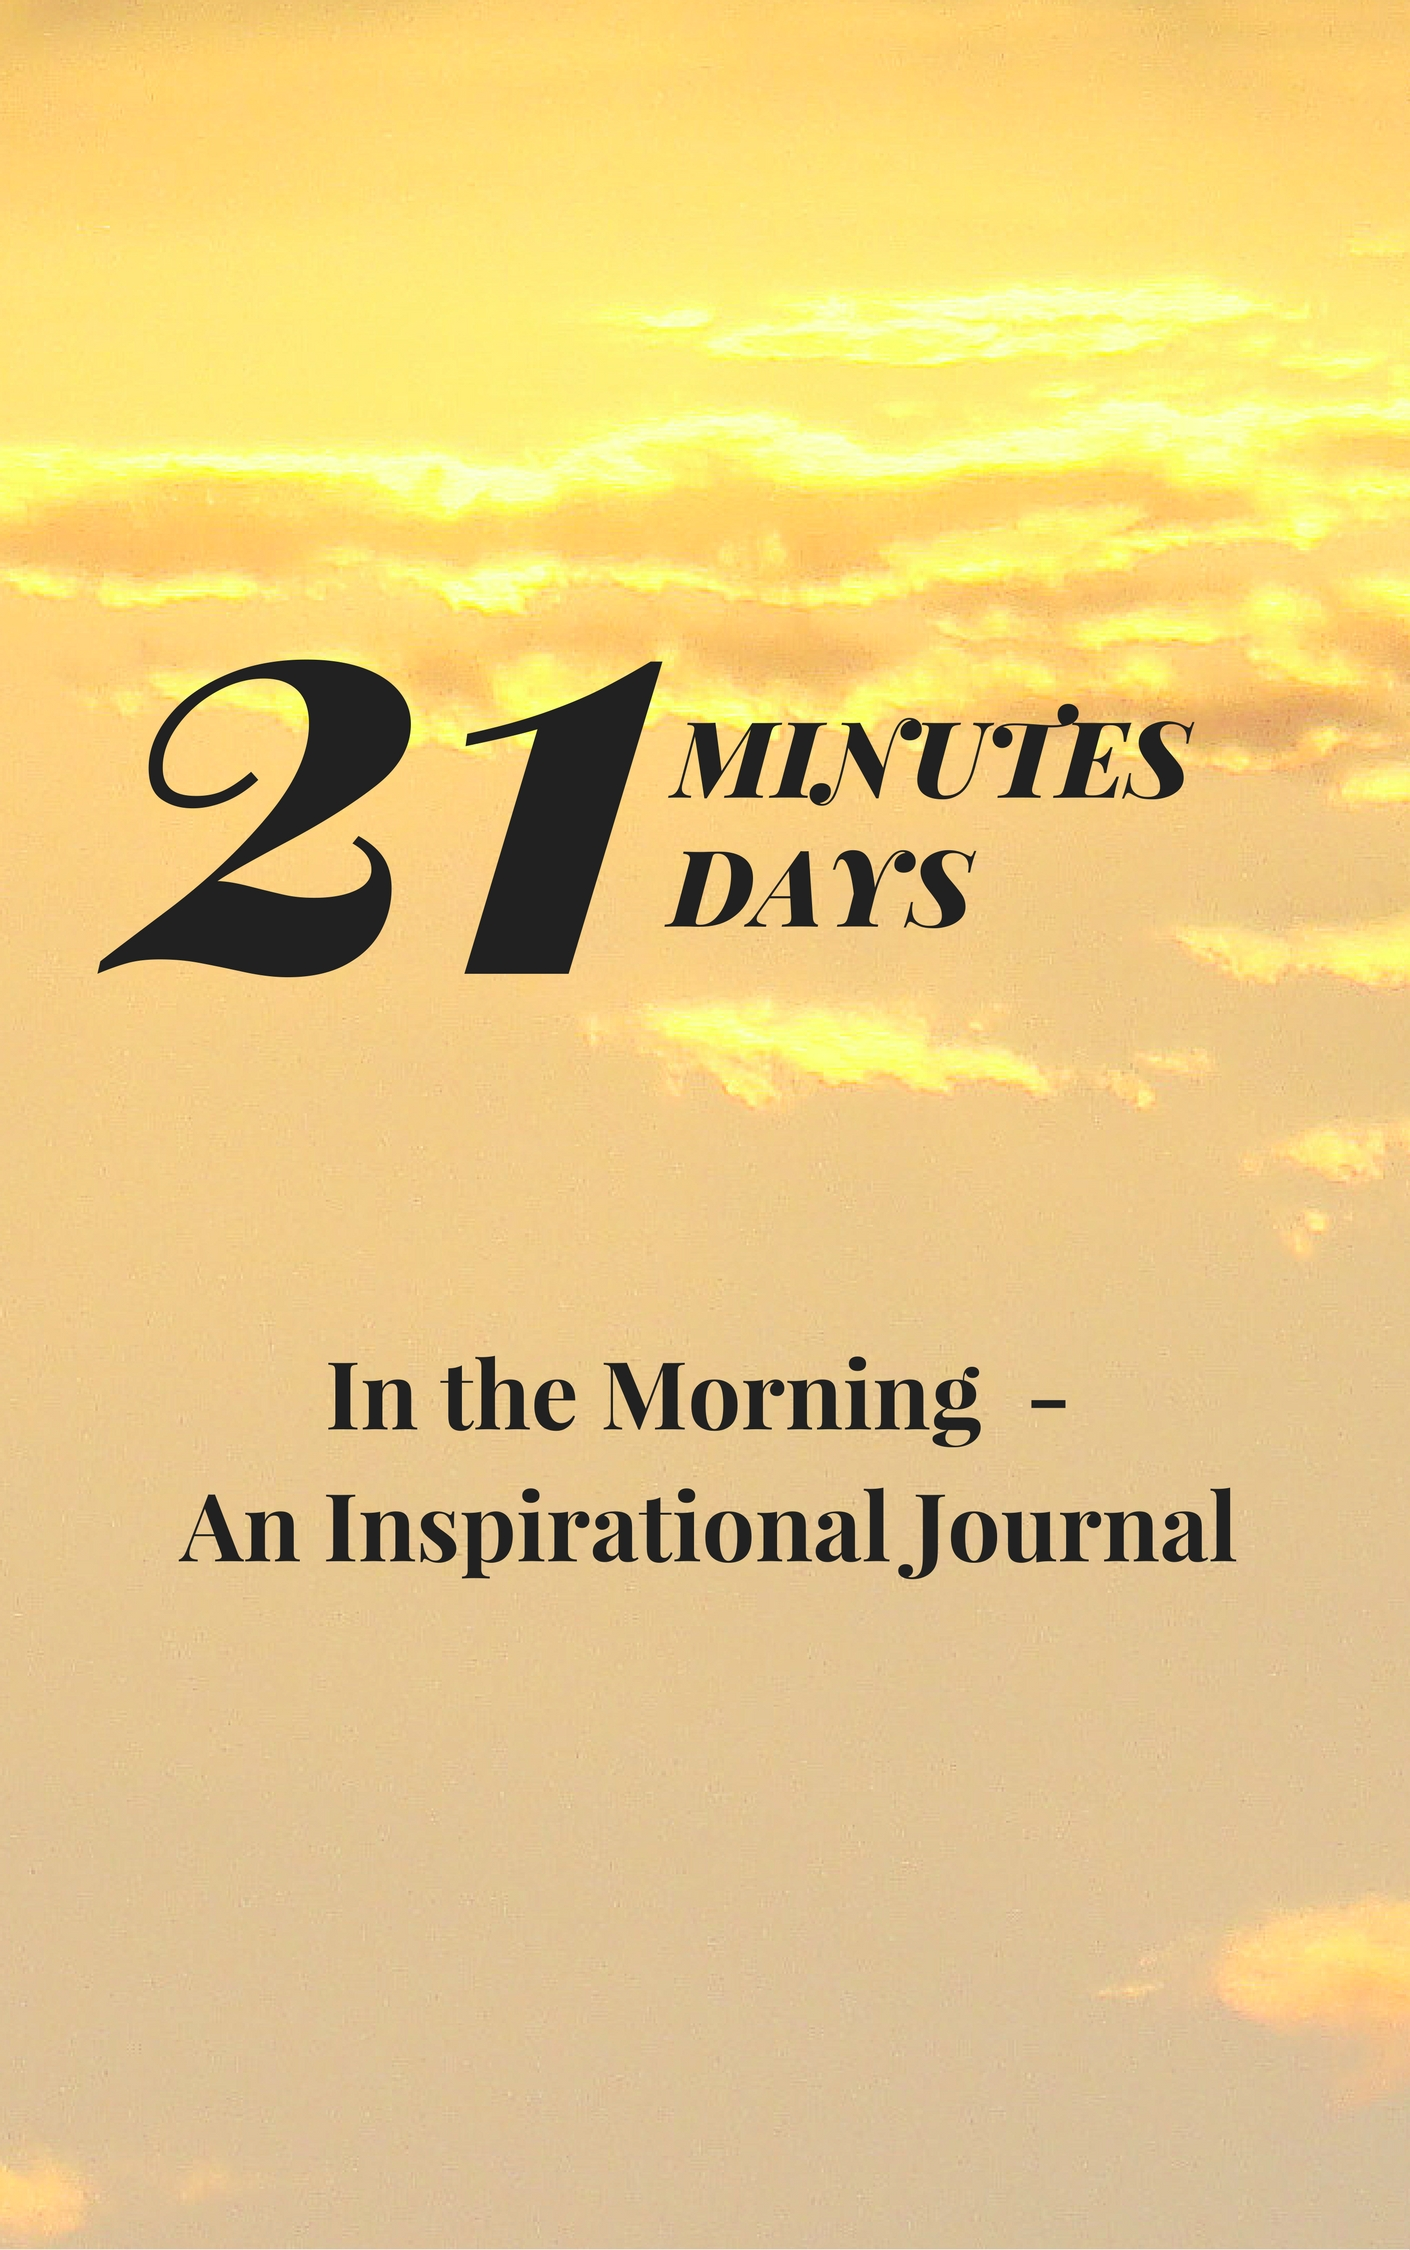 21 Minutes 21 Days Inspirational Journey Package